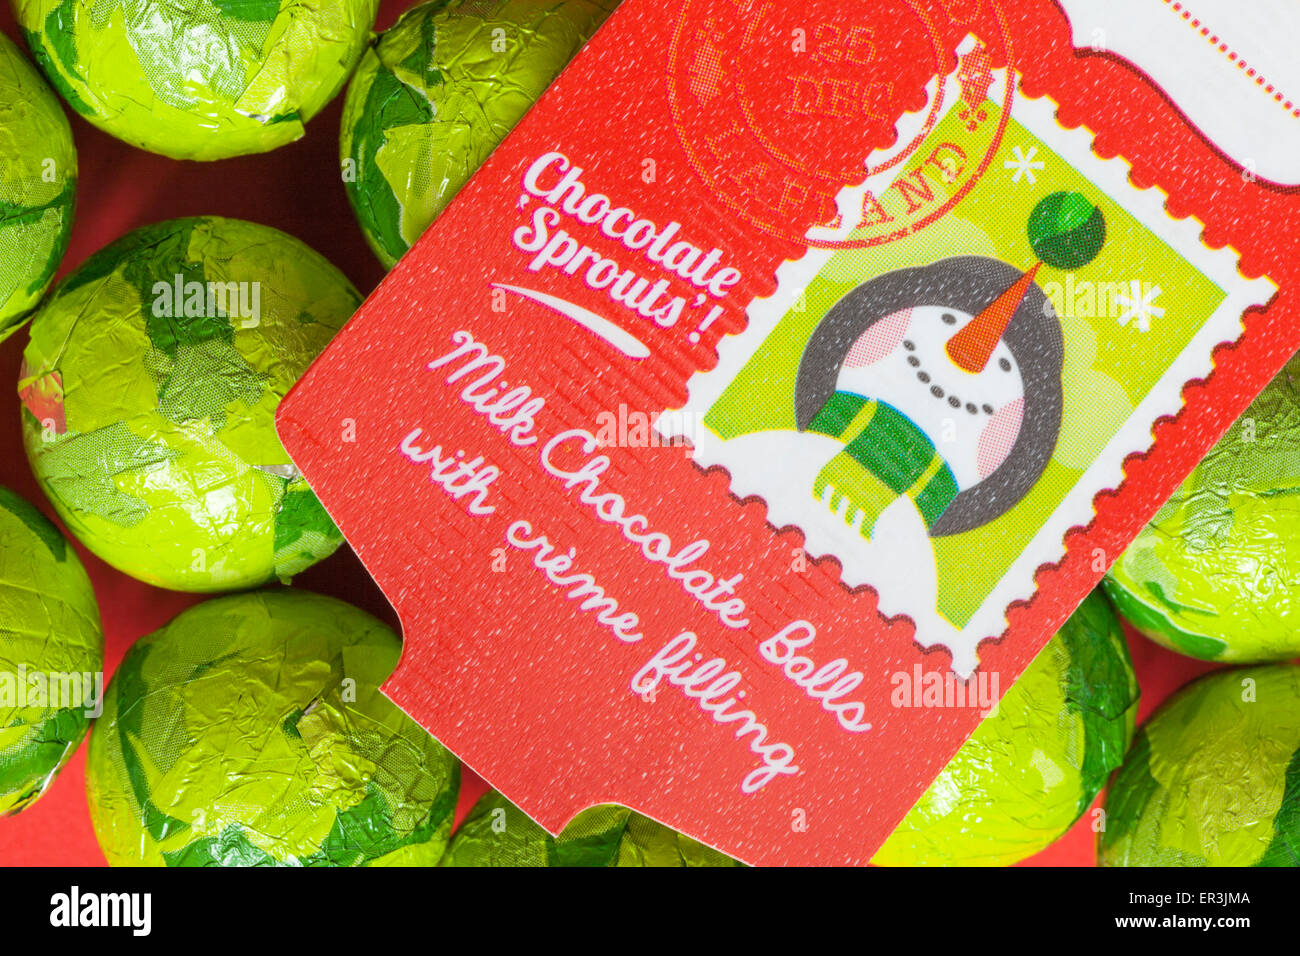 Christmas foil wrapped chocolate sprouts - milk chocolate balls with creme filling ready for Christmas - Stock Image